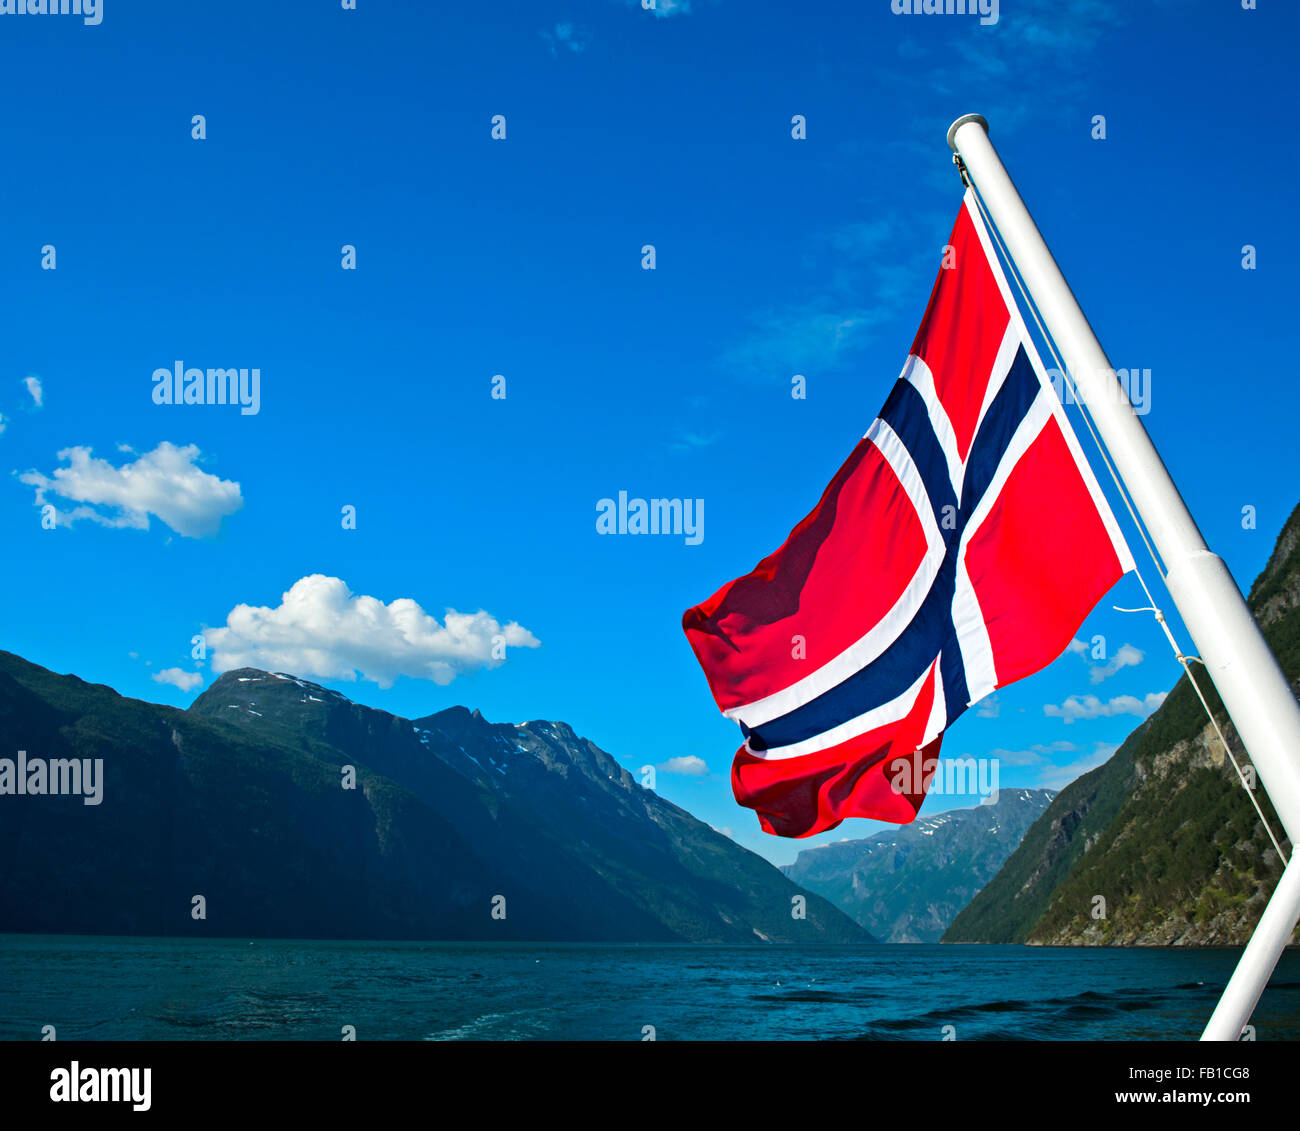 Norwegian Nationality High Resolution Stock Photography And Images Alamy